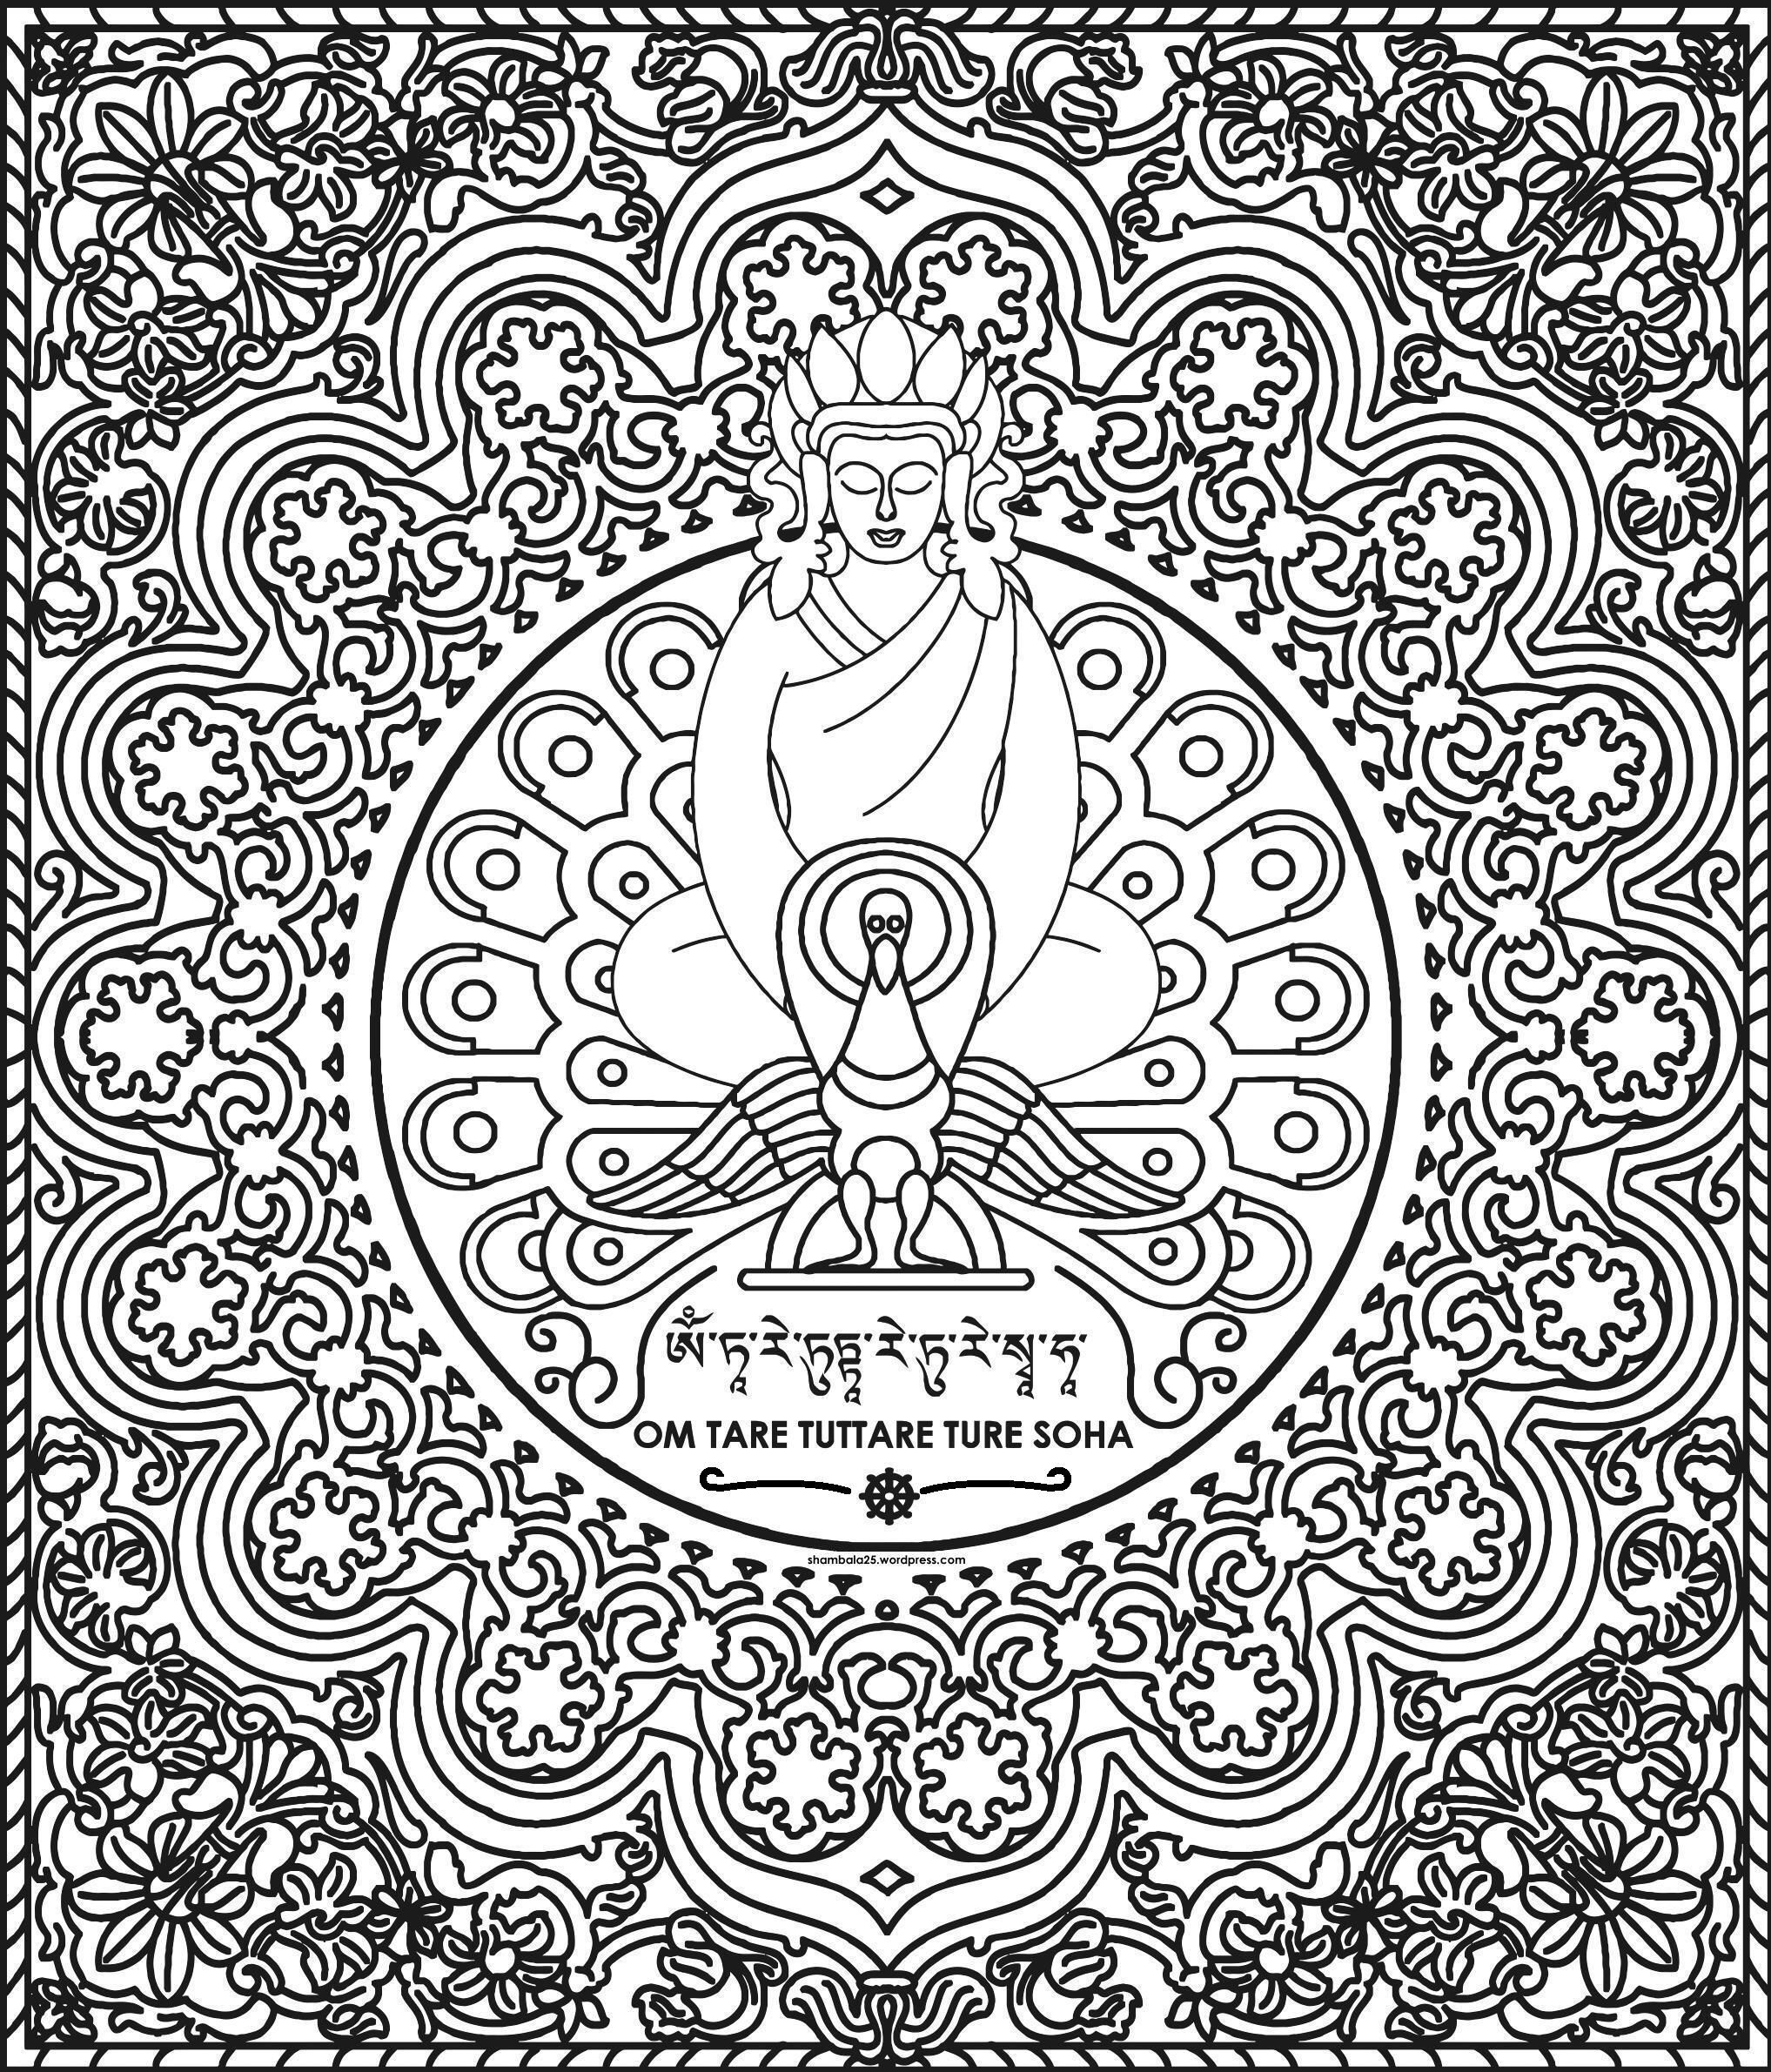 Buddha mandala | Coloring therapy | Pinterest | Mandalas, Buddha and ...